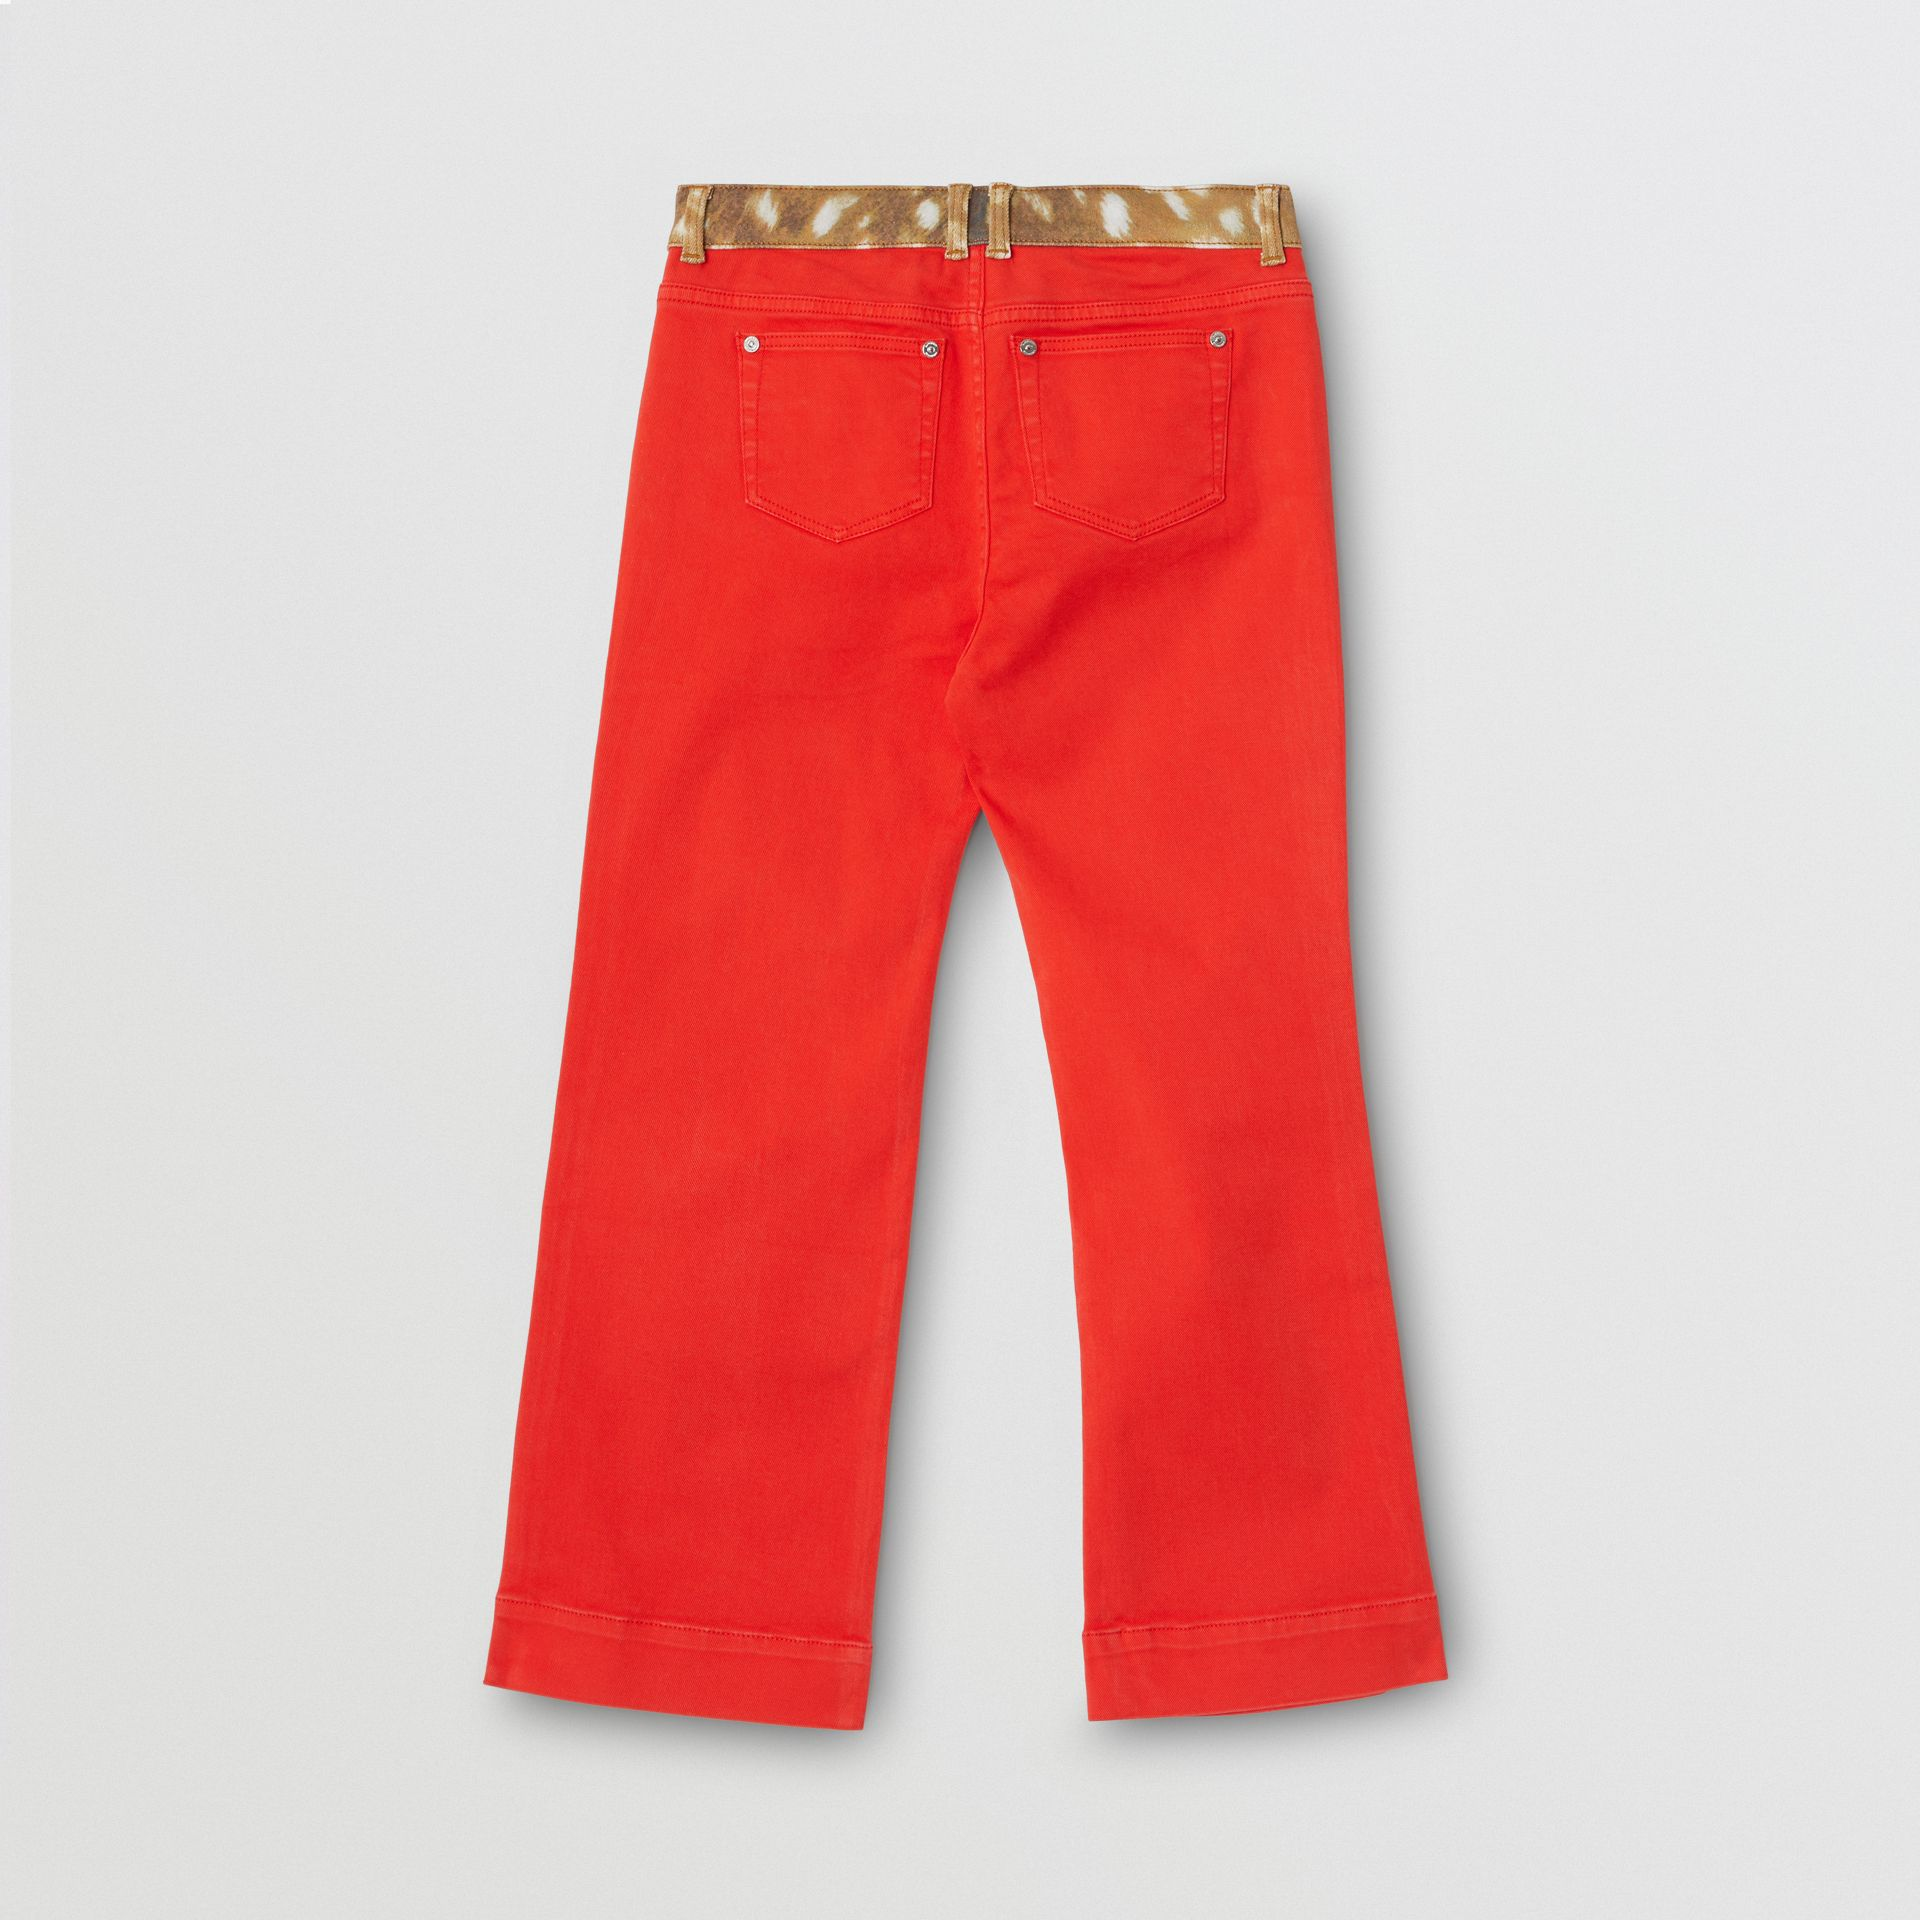 Flared Fit Deer Print Trim Japanese Denim Jeans in Bright Red | Burberry - gallery image 2